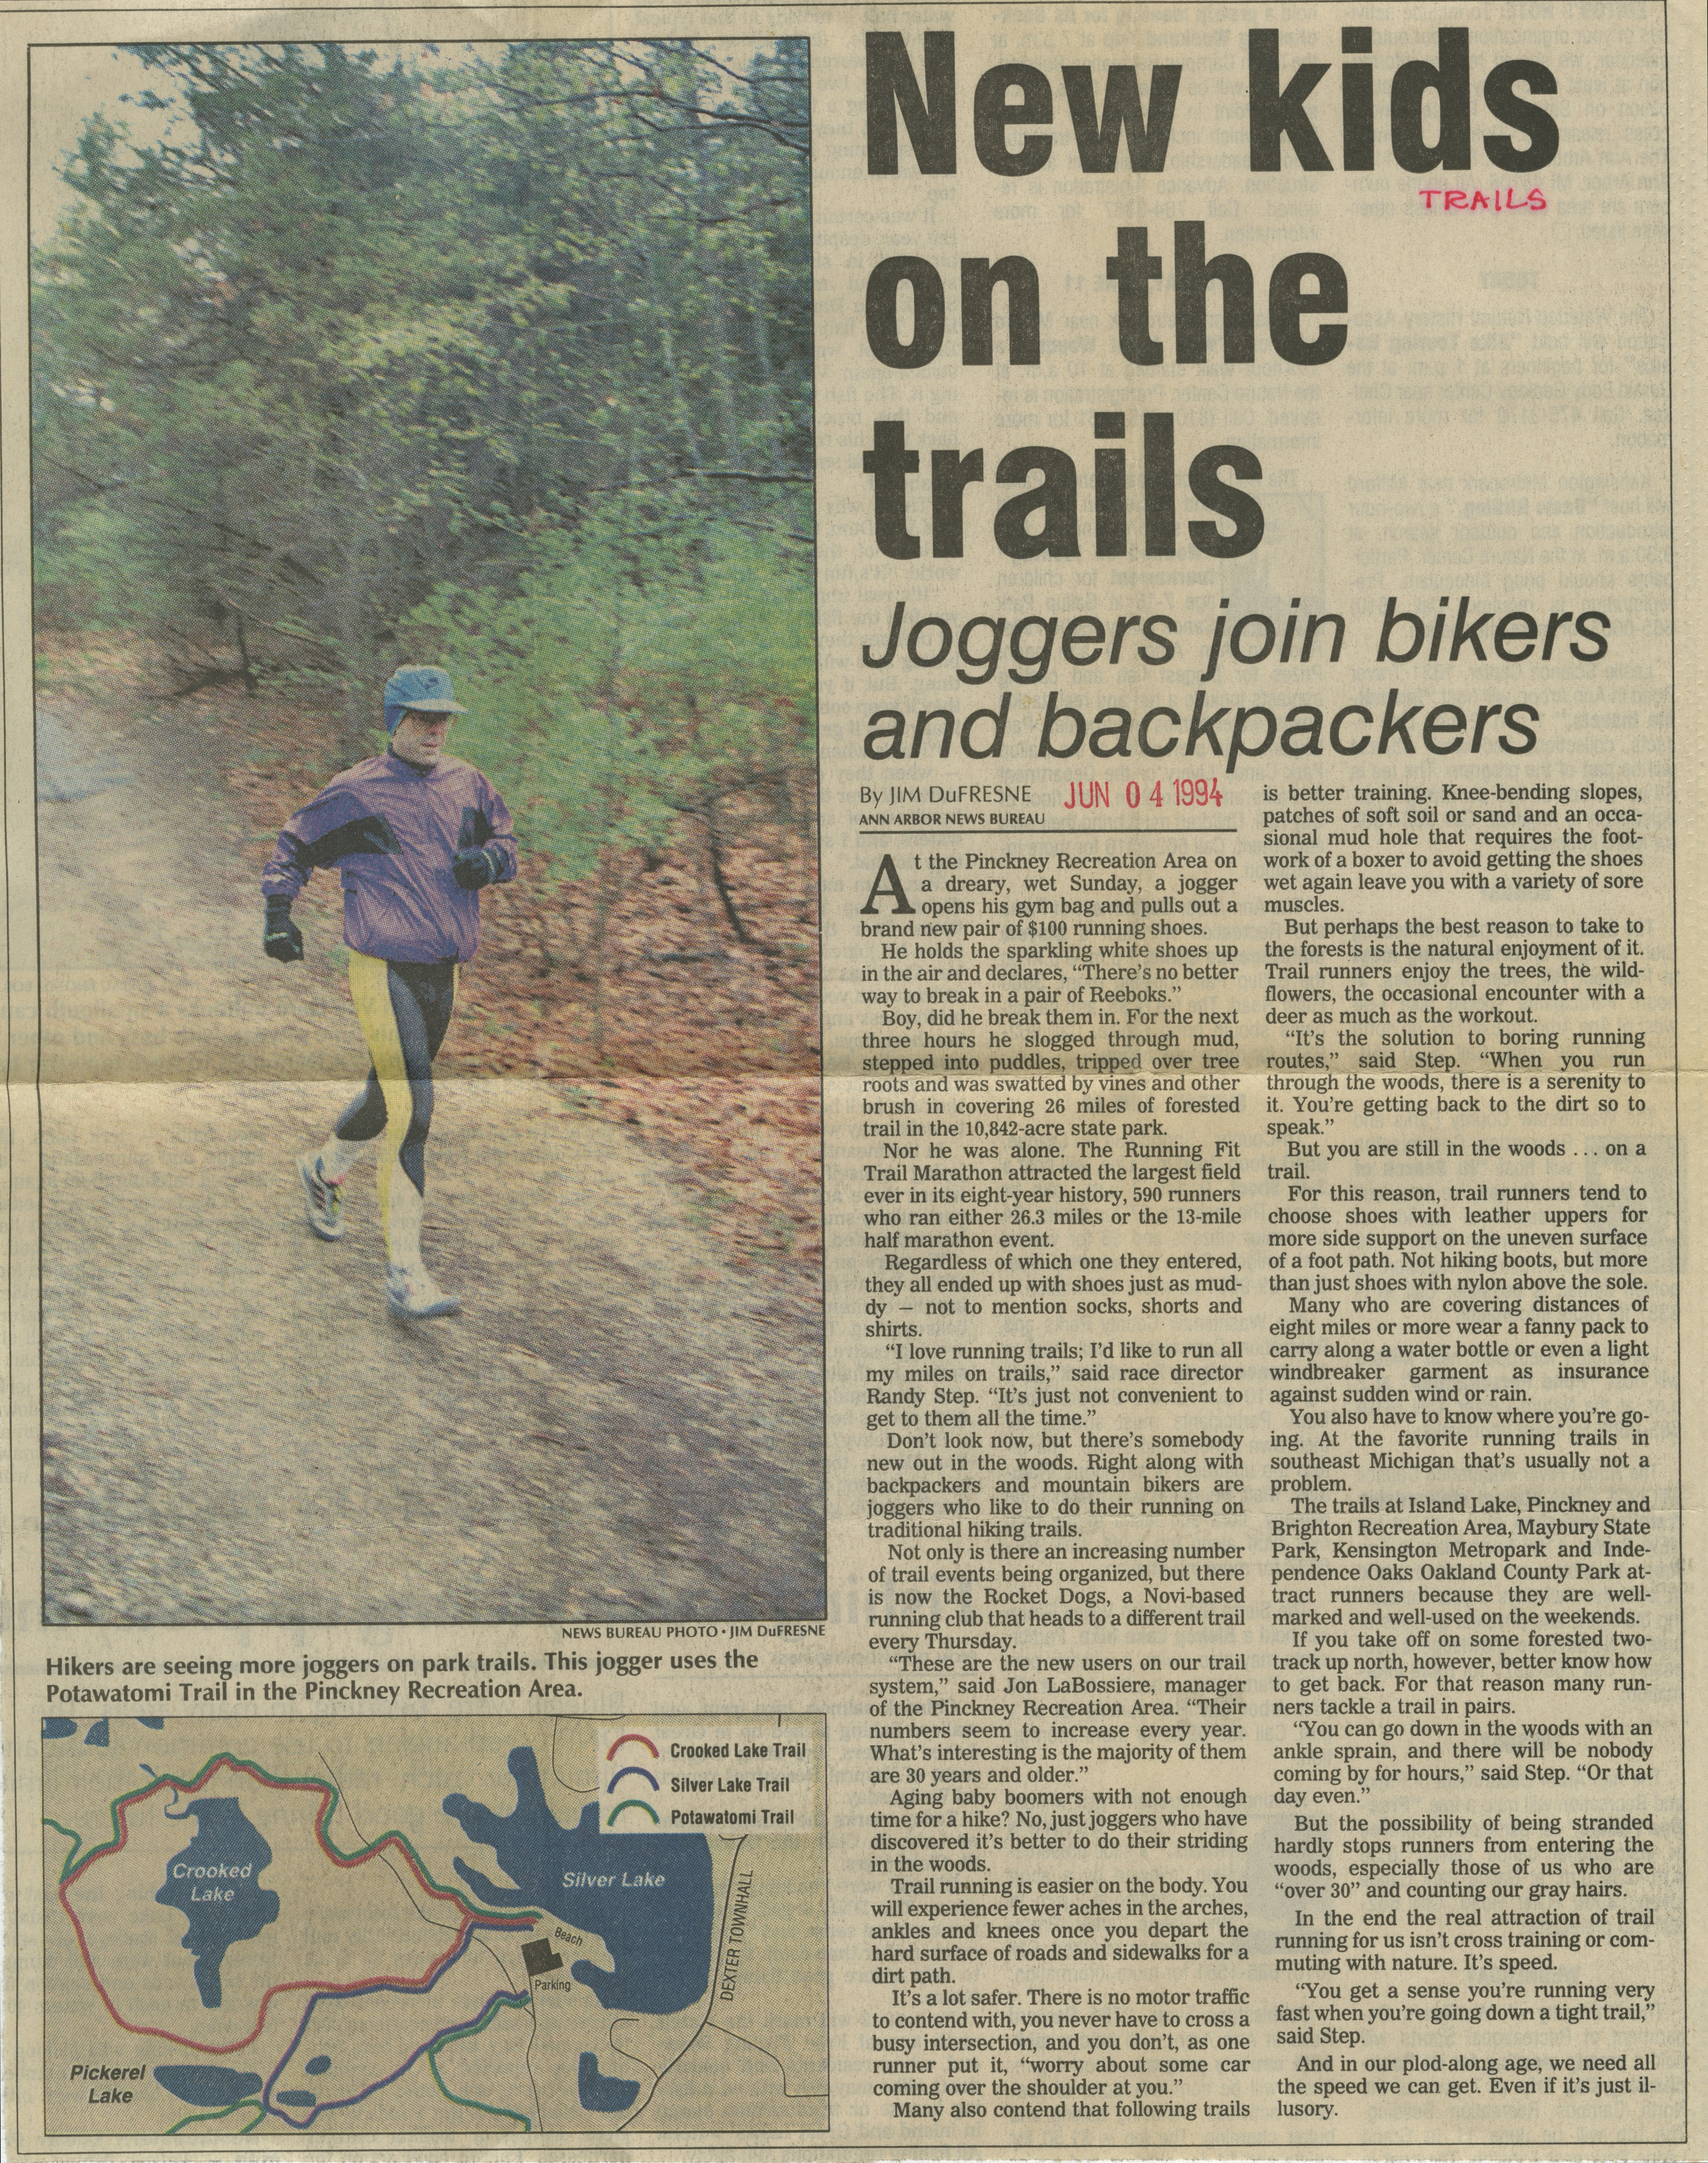 New kids on the trails image